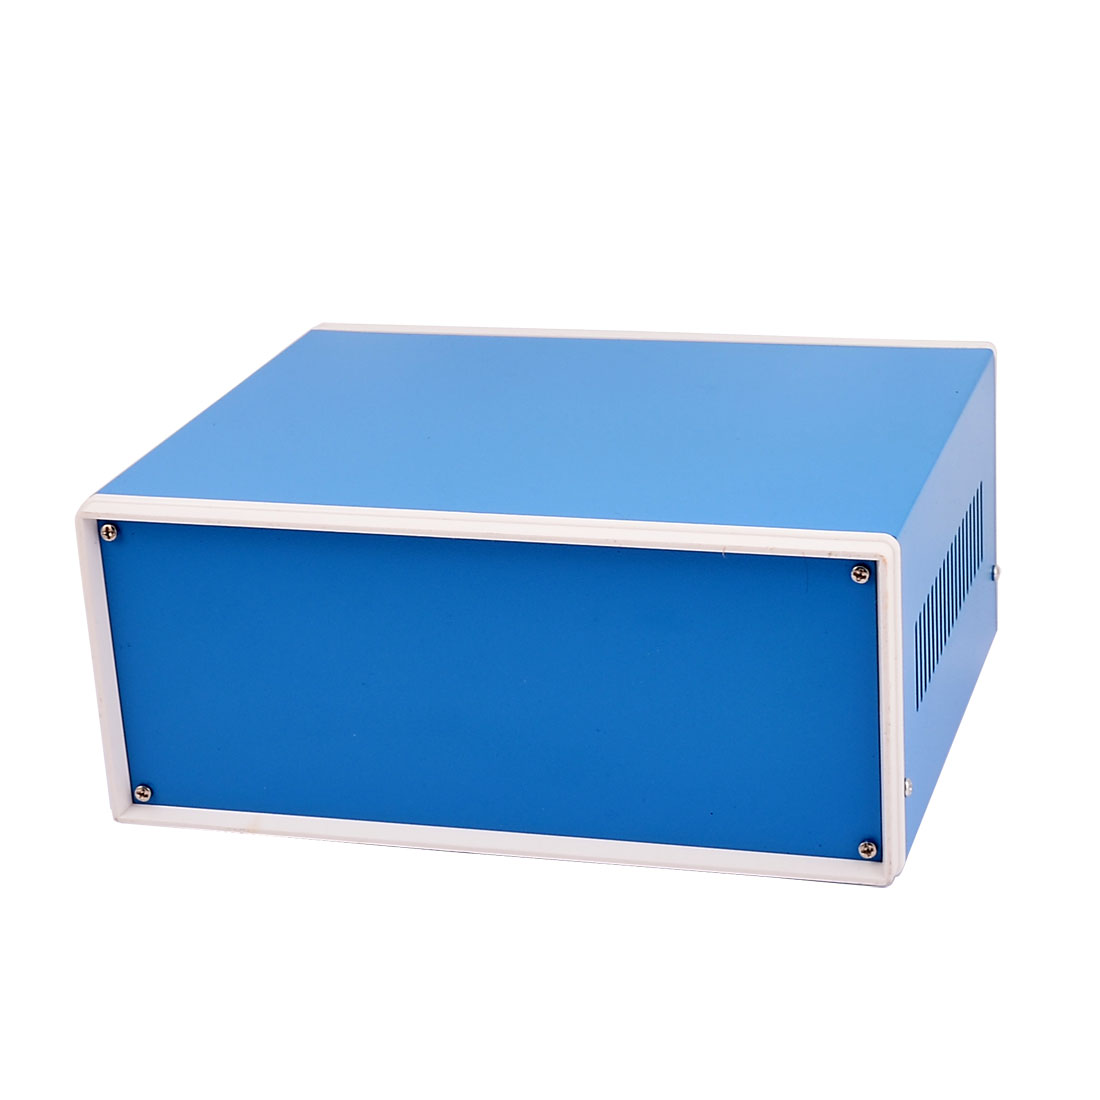 Metal Electronic Project Junction Box Enclosure Case Blue 230mm x 185mm x 95mm